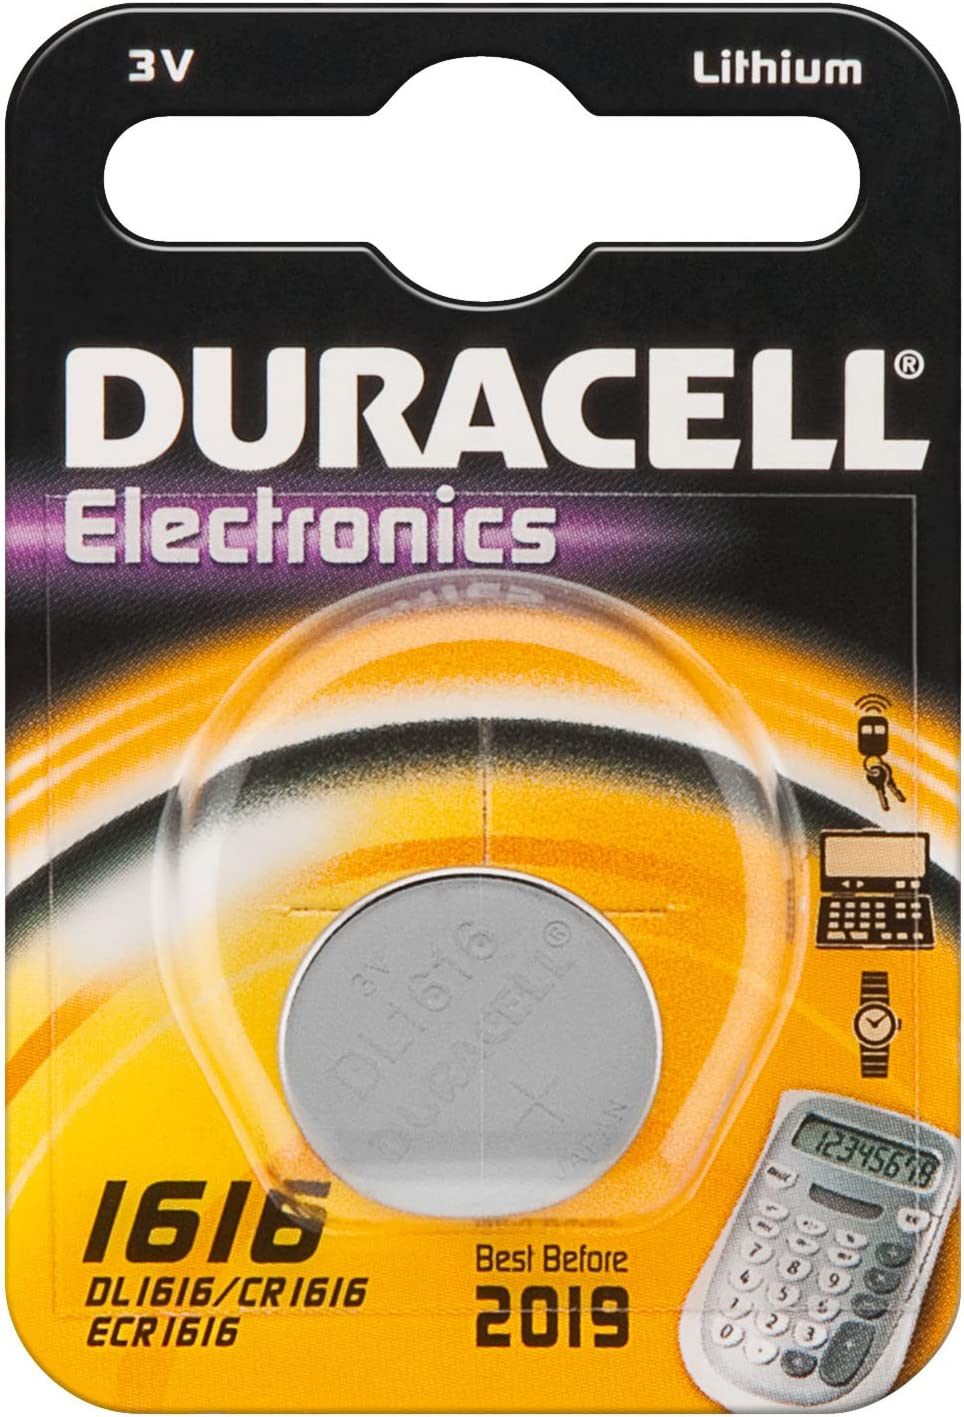 Duracell Lithium Knopfzelle Cr1616 Dl1616 5021lc Kamera